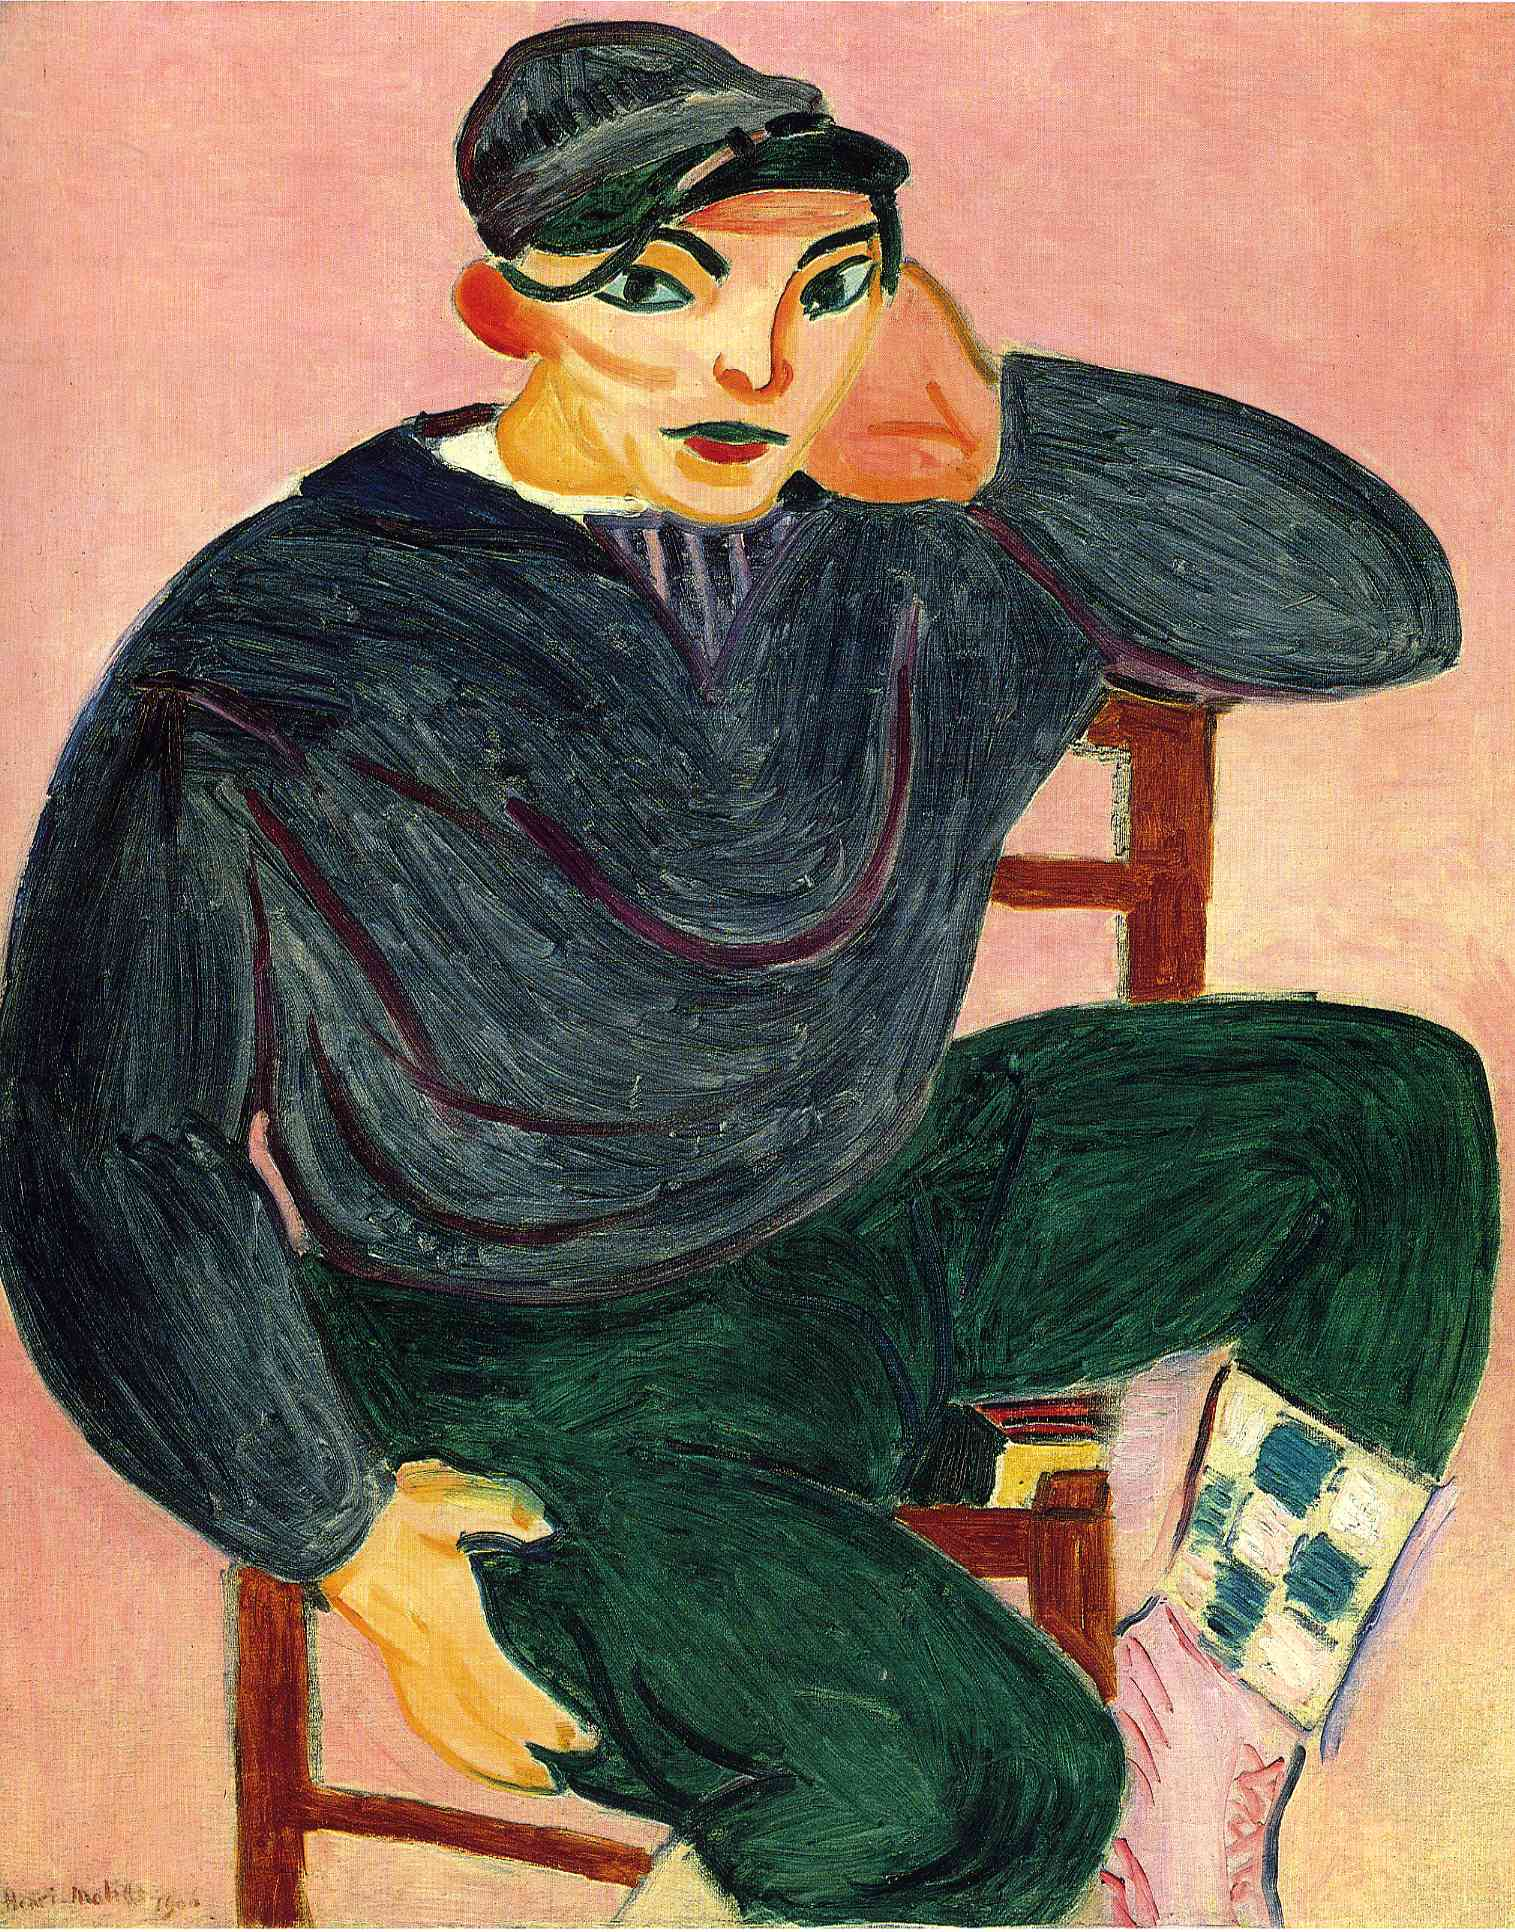 Sailor by Matisse